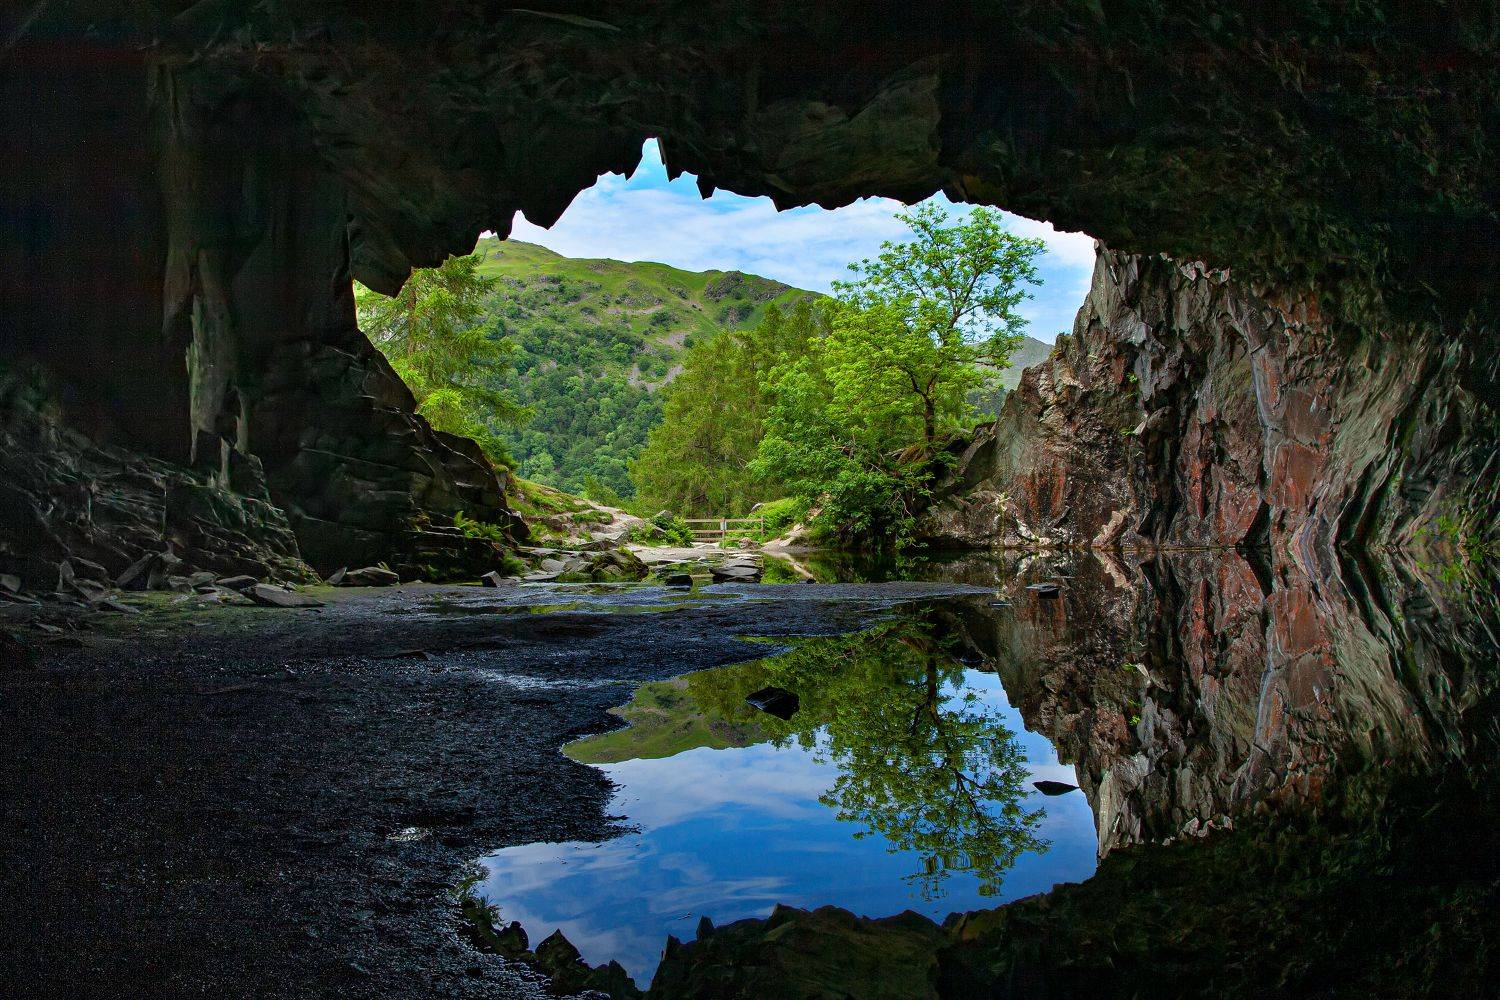 Rydal Cave by Martin Lawrence